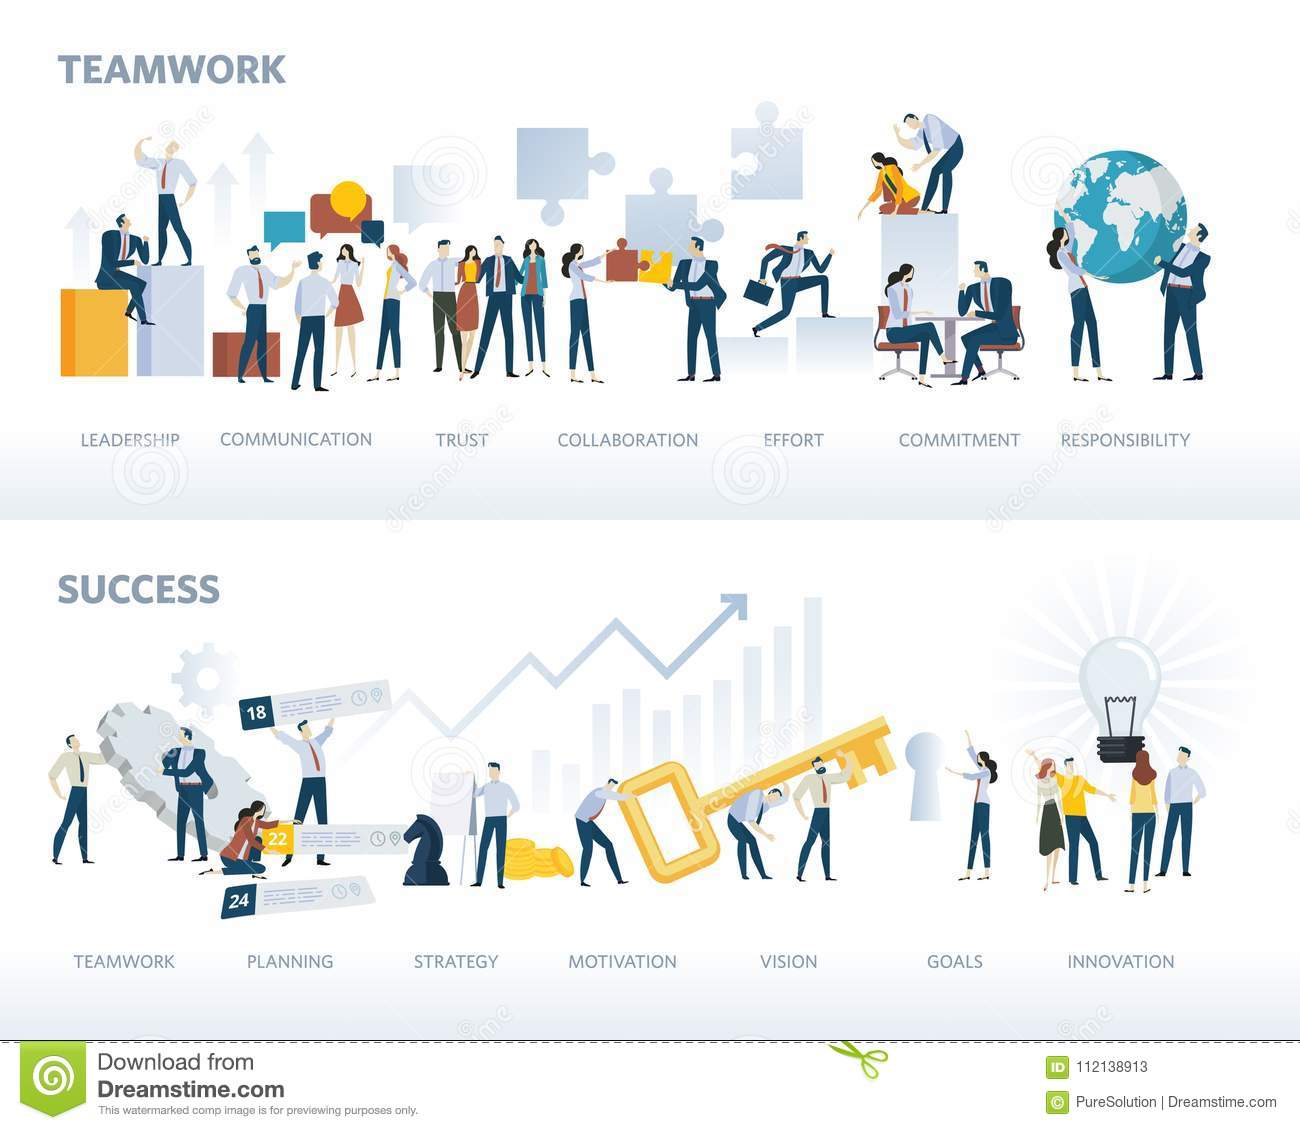 teamwork projects document editor download